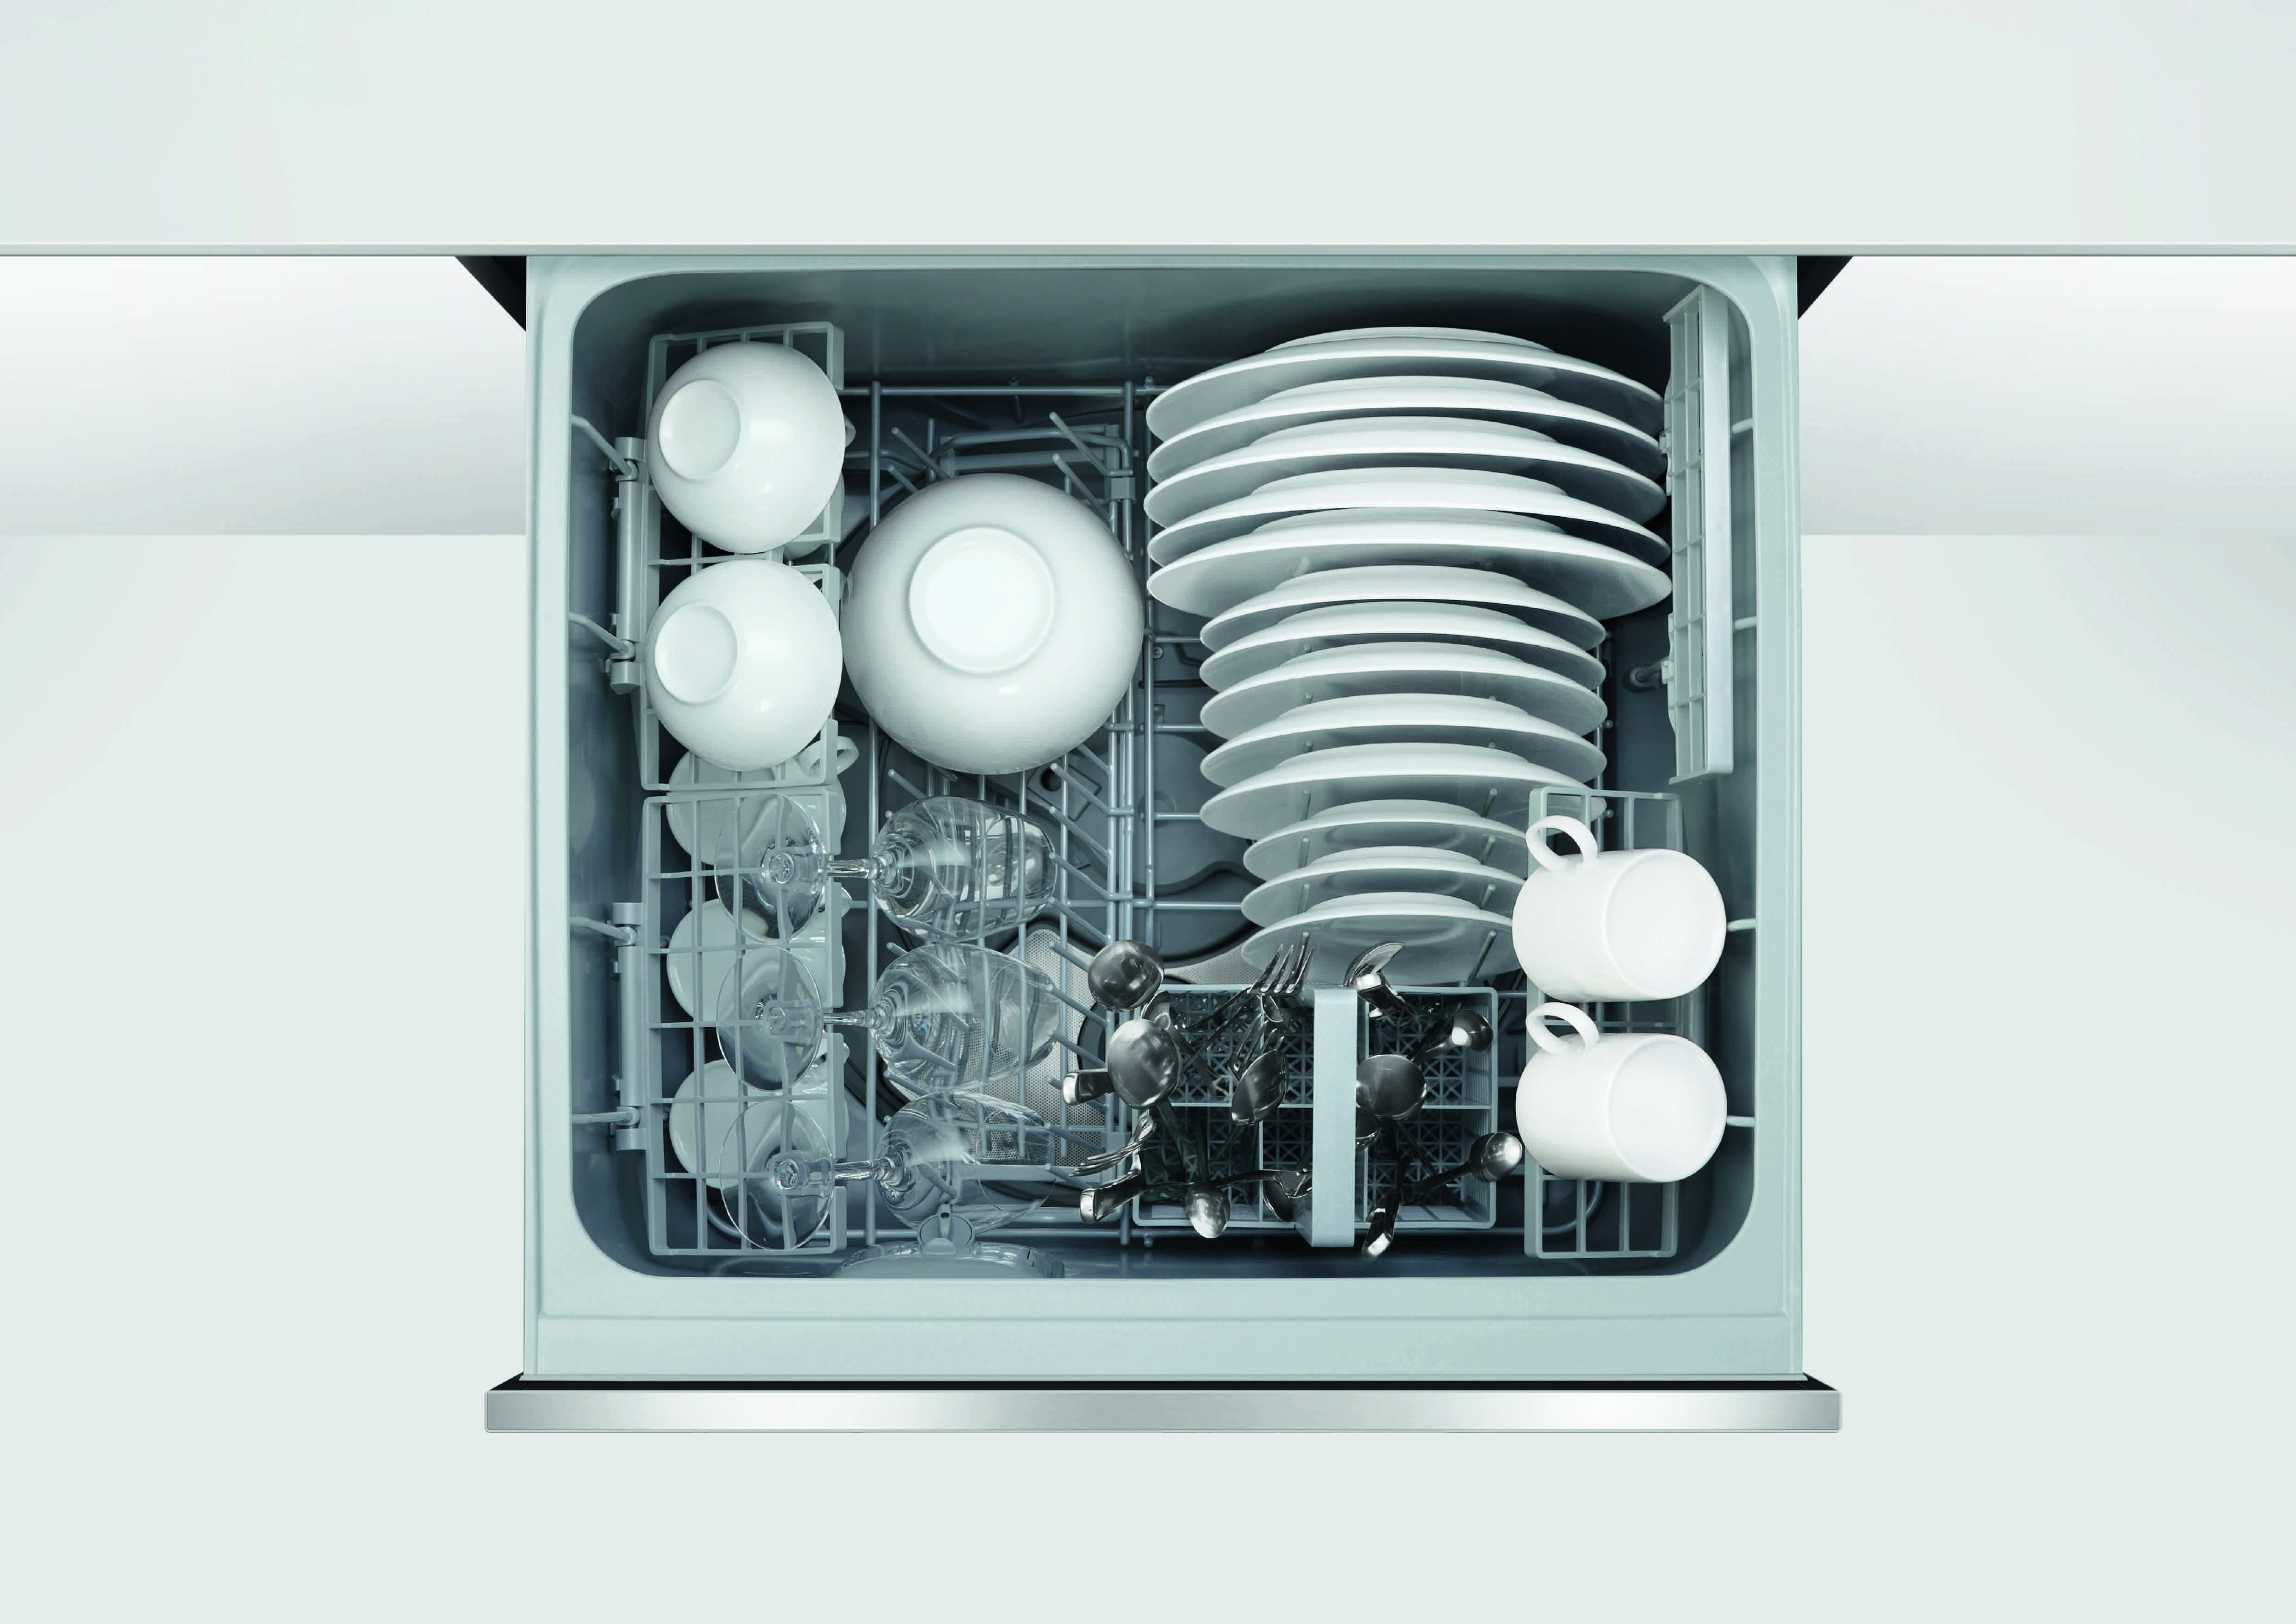 samsung best control stainless buy steel top dishwasher drawer p silver in tall site rd built waterwall tub single